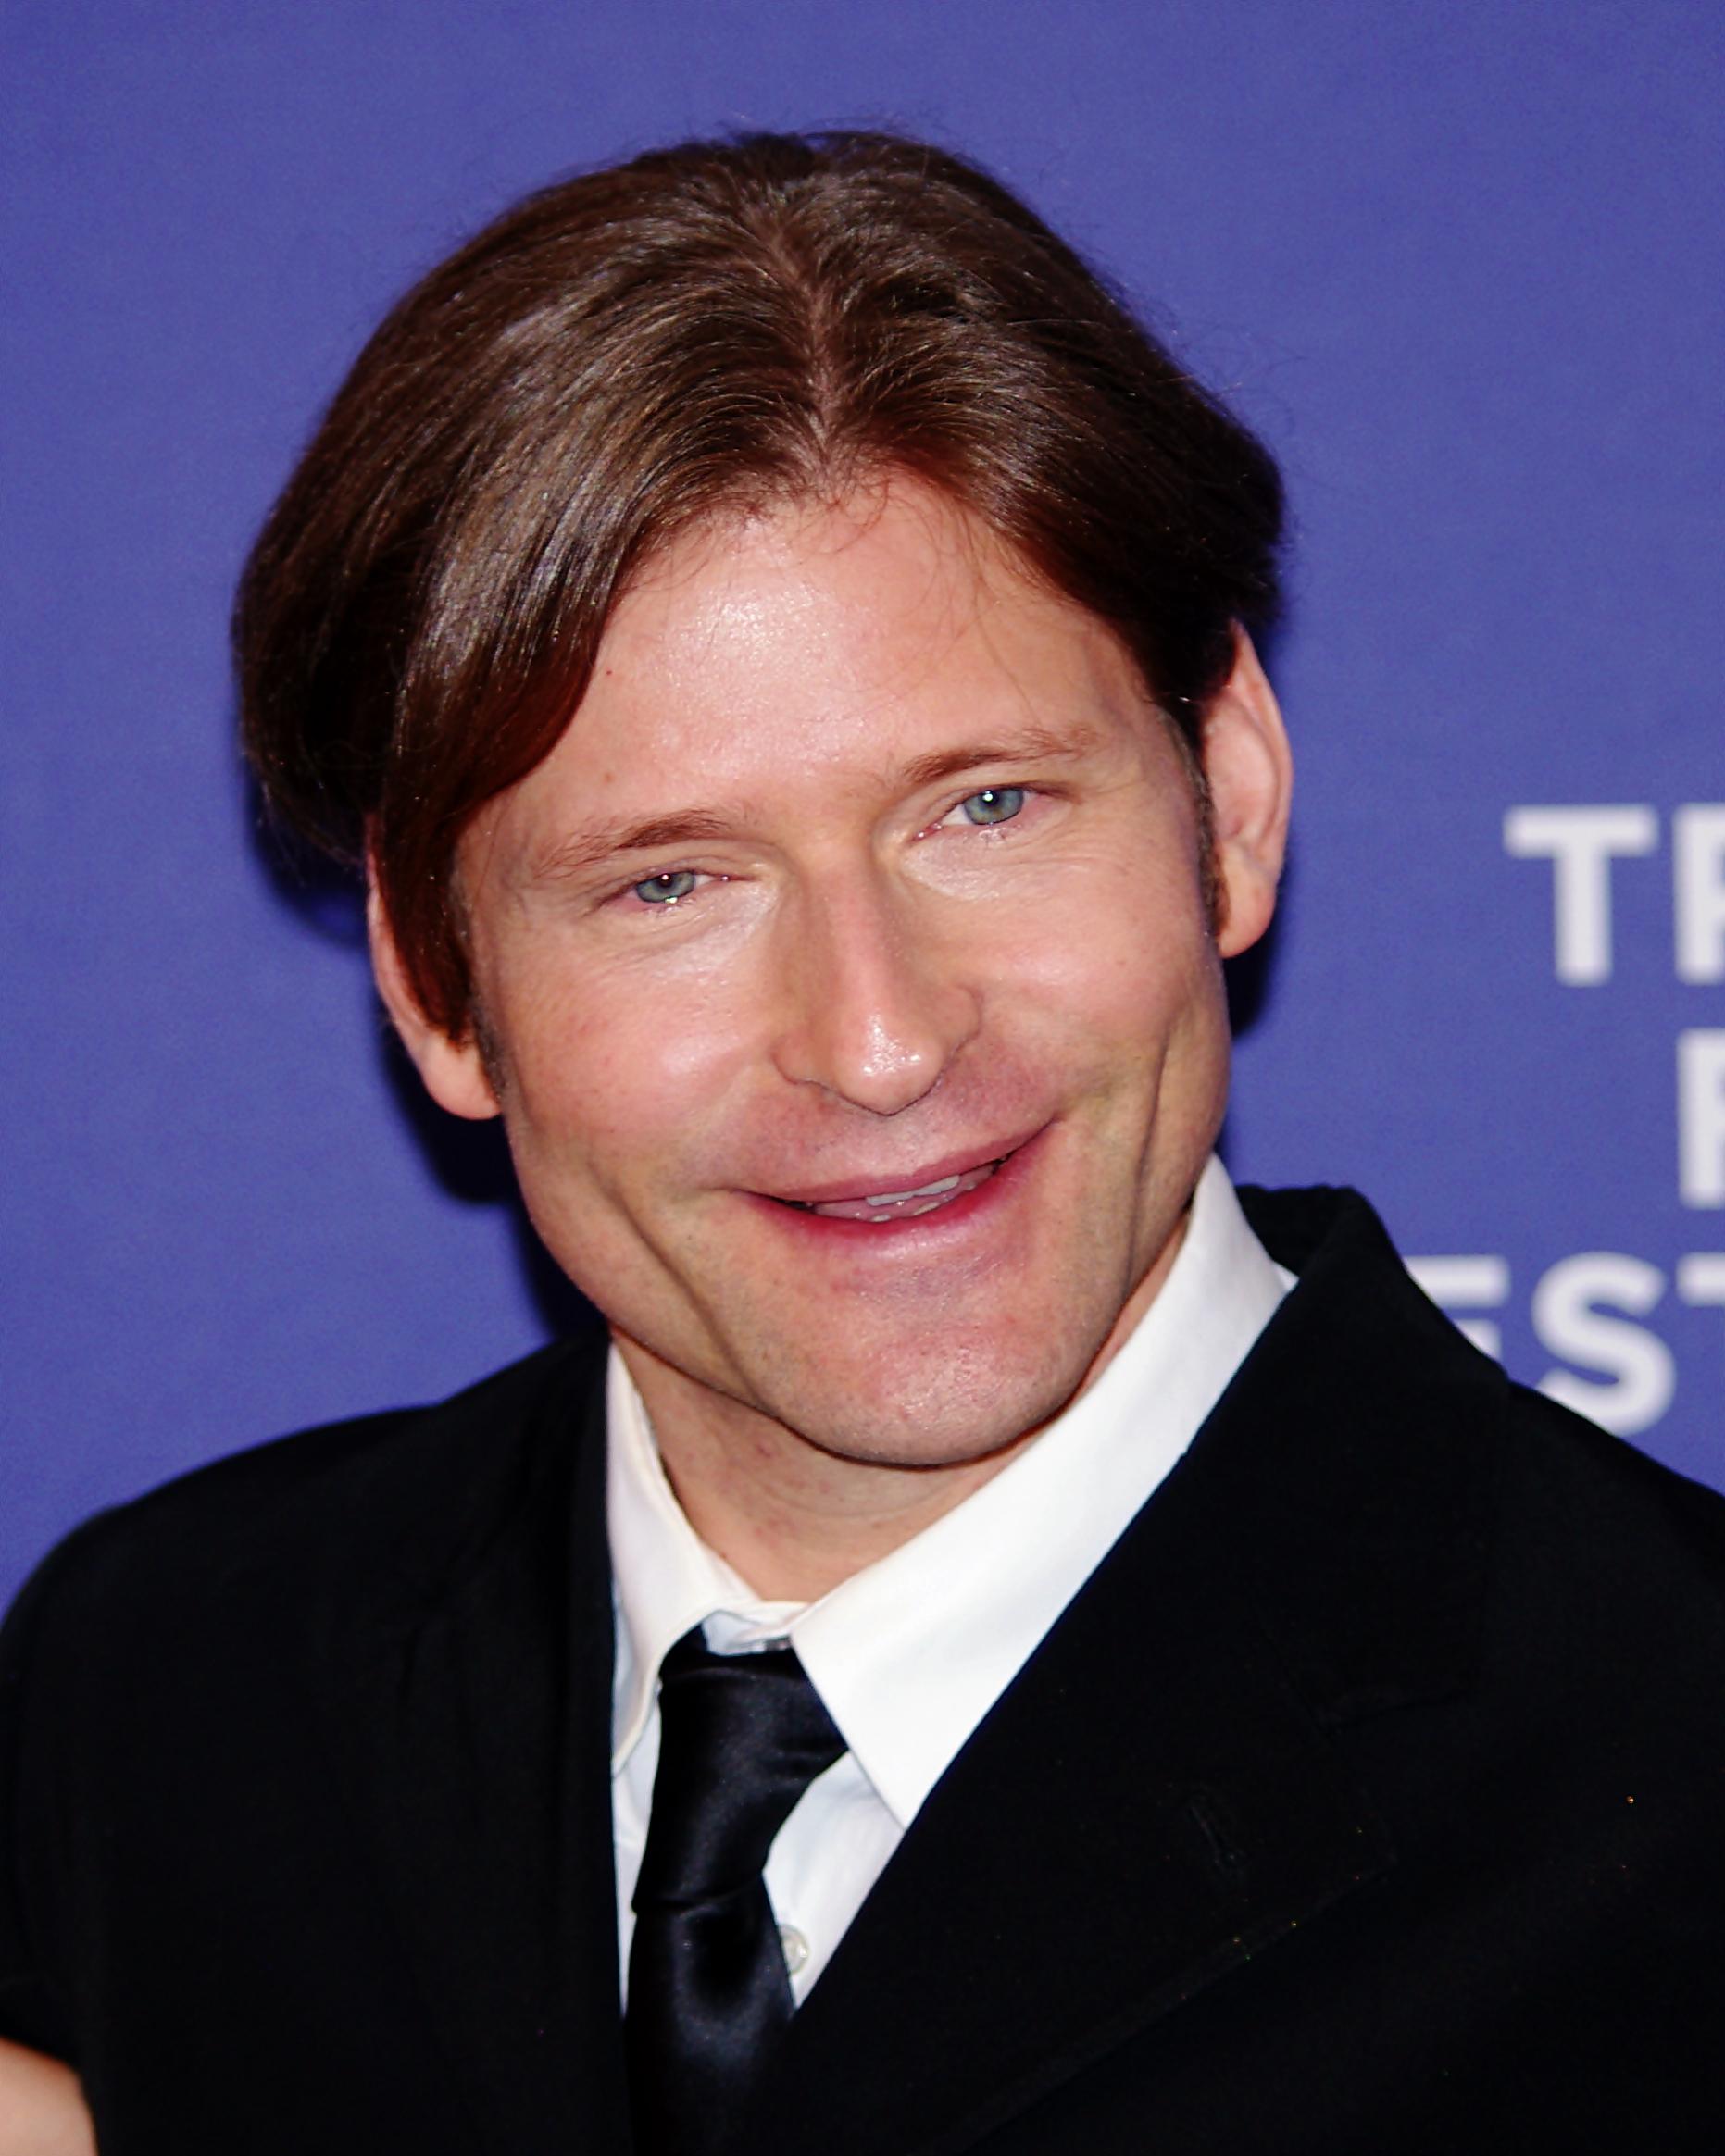 The 54-year old son of father Bruce Glover and mother Mary Elizabeth Bloom Koerber Crispin Glover in 2018 photo. Crispin Glover earned a  million dollar salary - leaving the net worth at  million in 2018